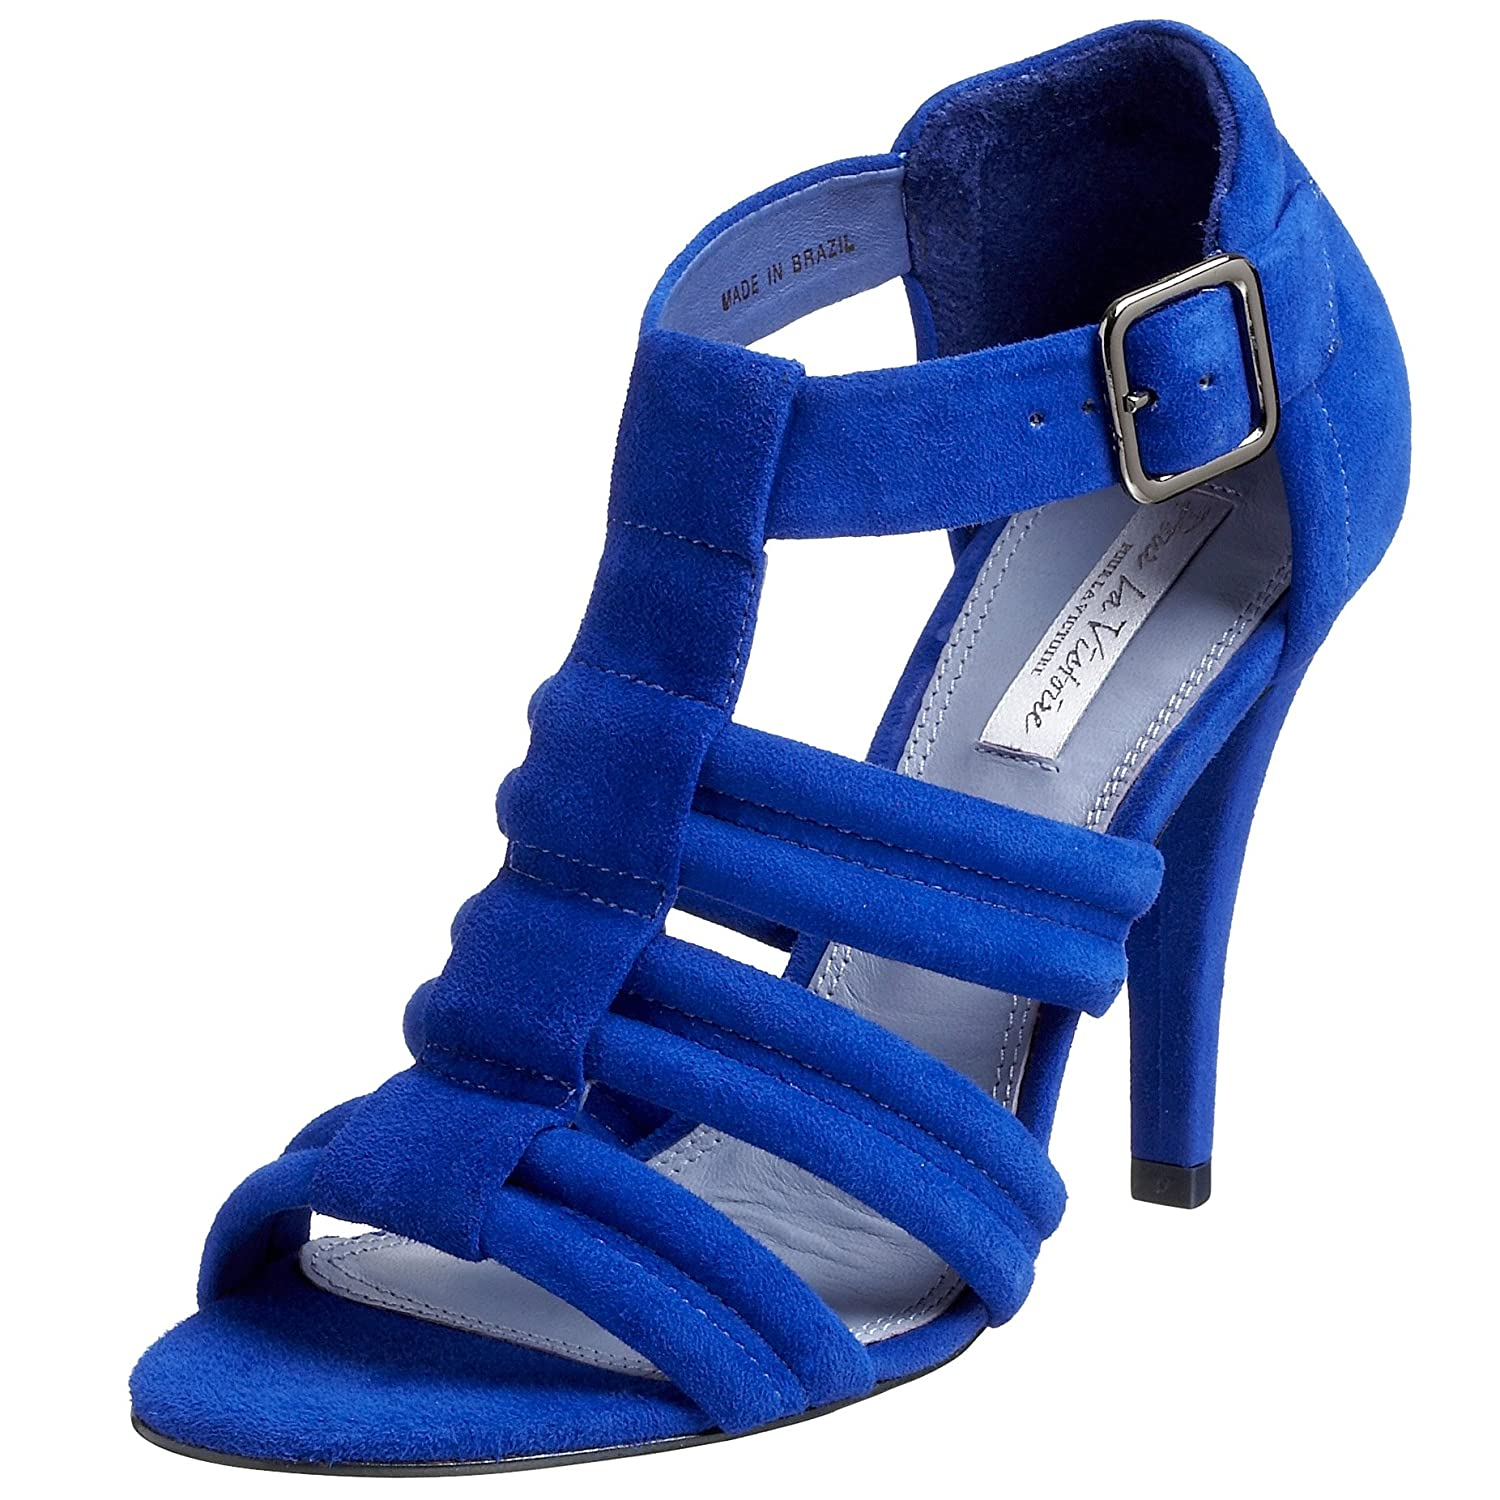 Pour La Victoire Erica Sandal - Free Overnight Shipping &amp; Return Shipping: Endless.com from endless.com